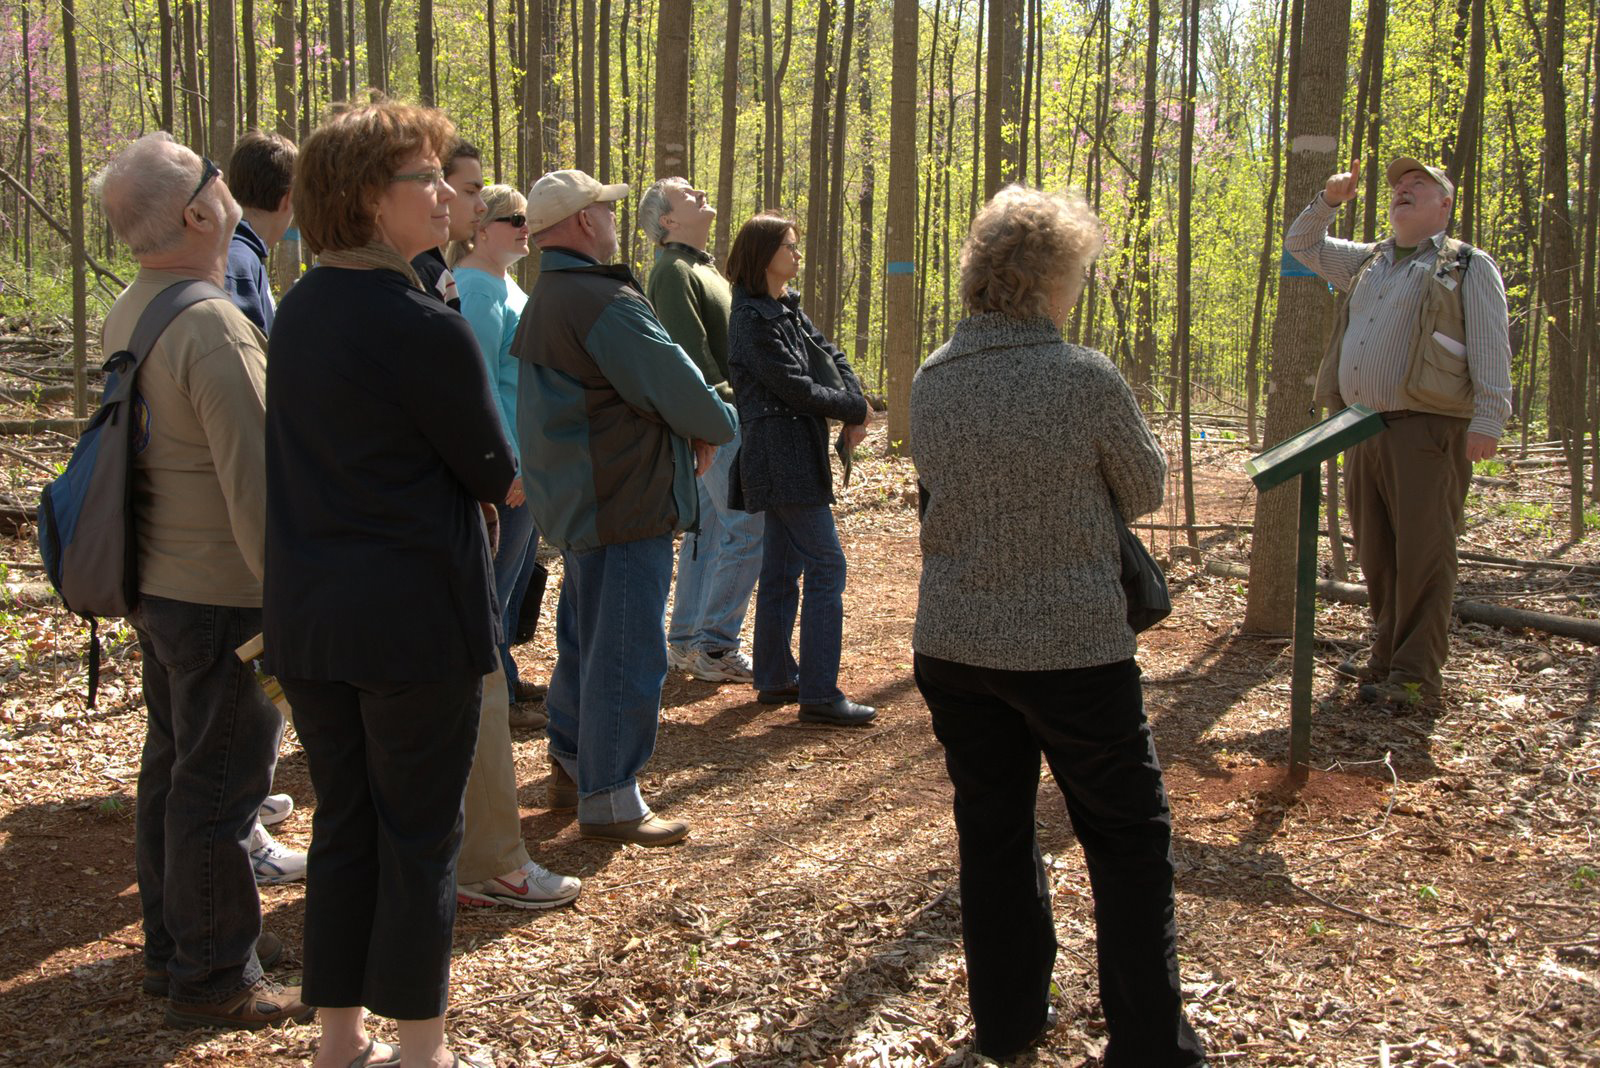 A group of people standing next to an interpretive sign in the woods.